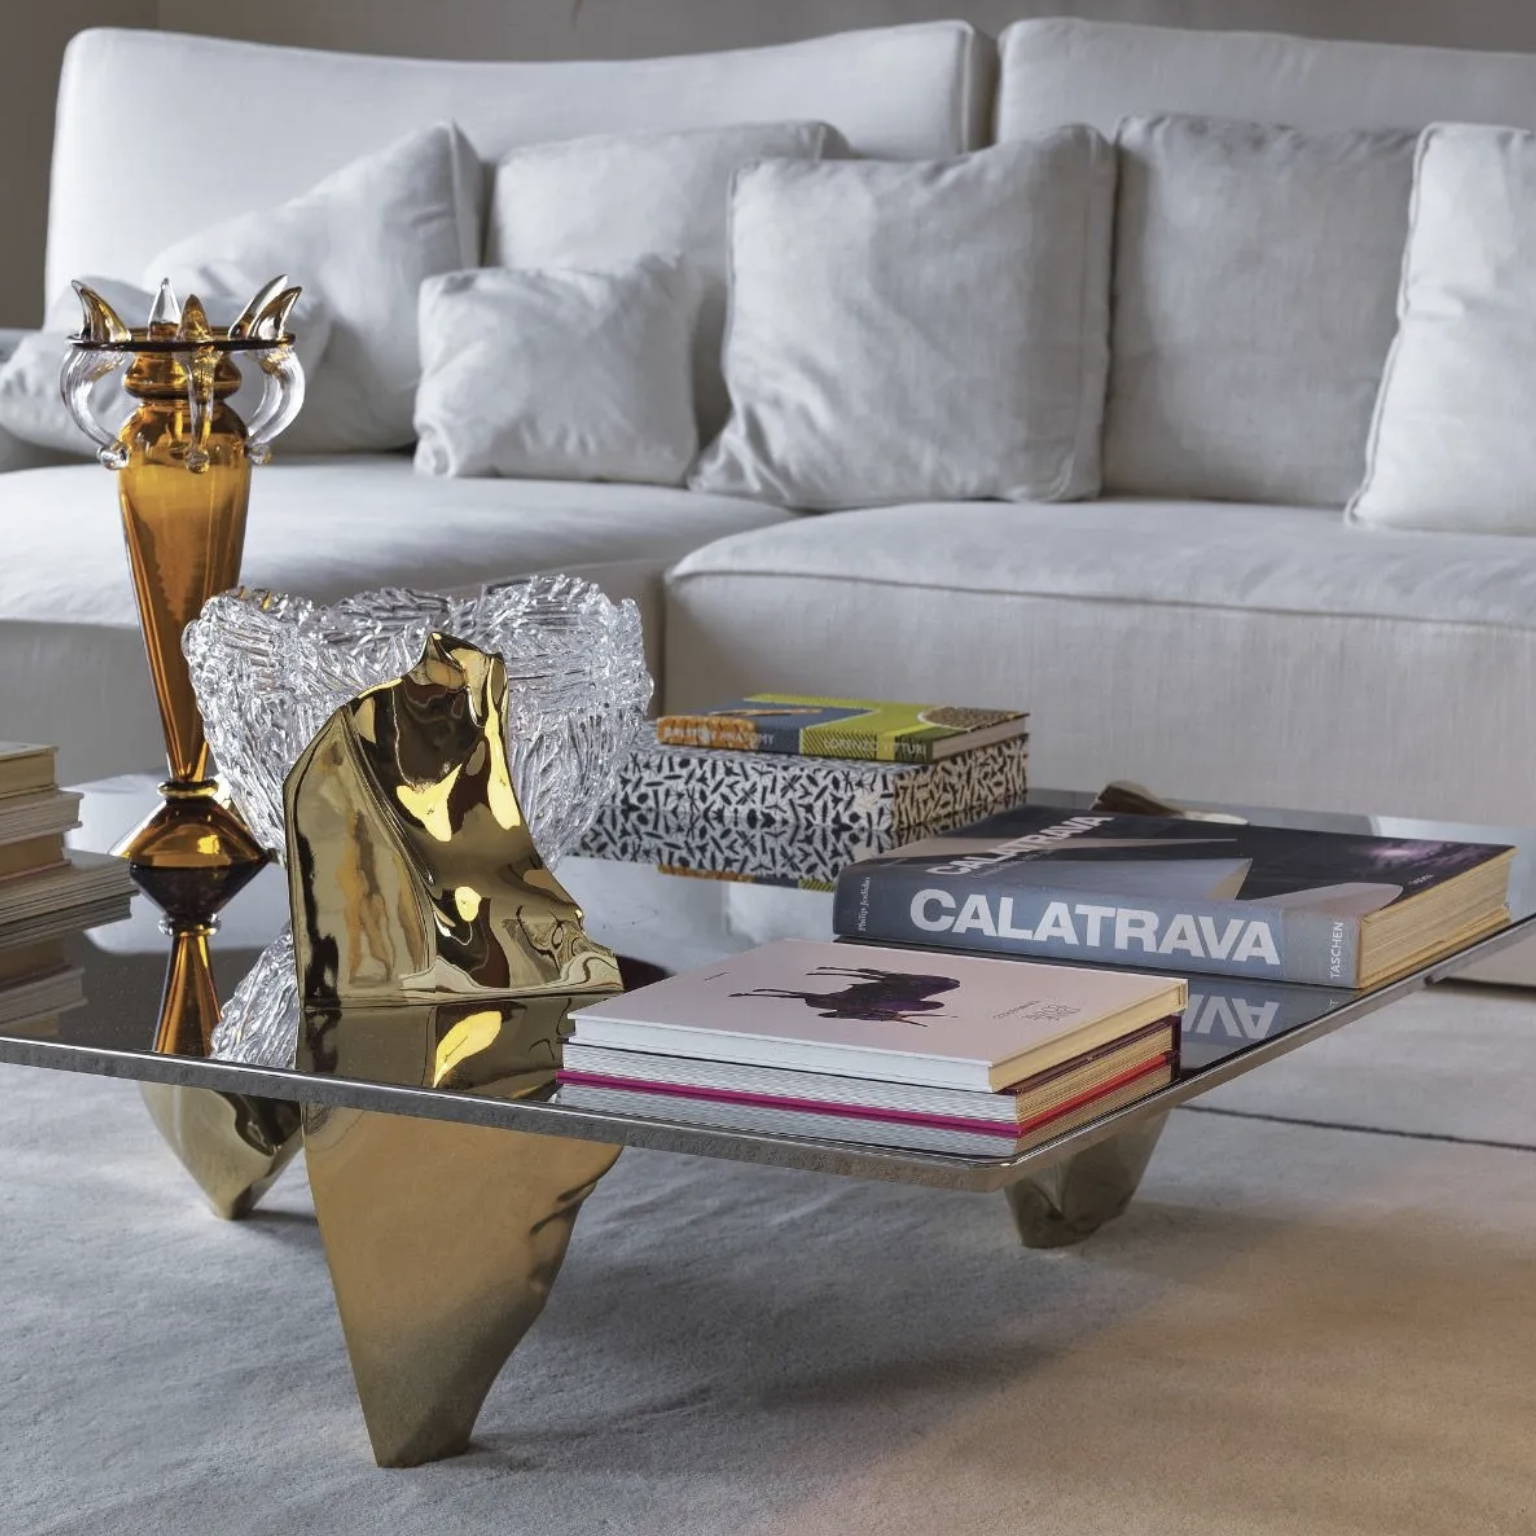 Sereno Coffee Table - In Sereno Fredrikson Stallard create a moment of calm and solitude. The forms themselves are created from shards of glass violently created by the artists, but they become unified in utter stillness by the inclusion of a simple flat sheet and the transformation of the group into polished stainless steel. This brings a reflection of the three unified elements in the surface, creating another of fredrikson stallard's recurring themes, rorschach like symmetrical forms. This even further delivers their nature from turmoil to serenity - they resolve themselves through the reorganization of symmetry. | Matter of Stuff